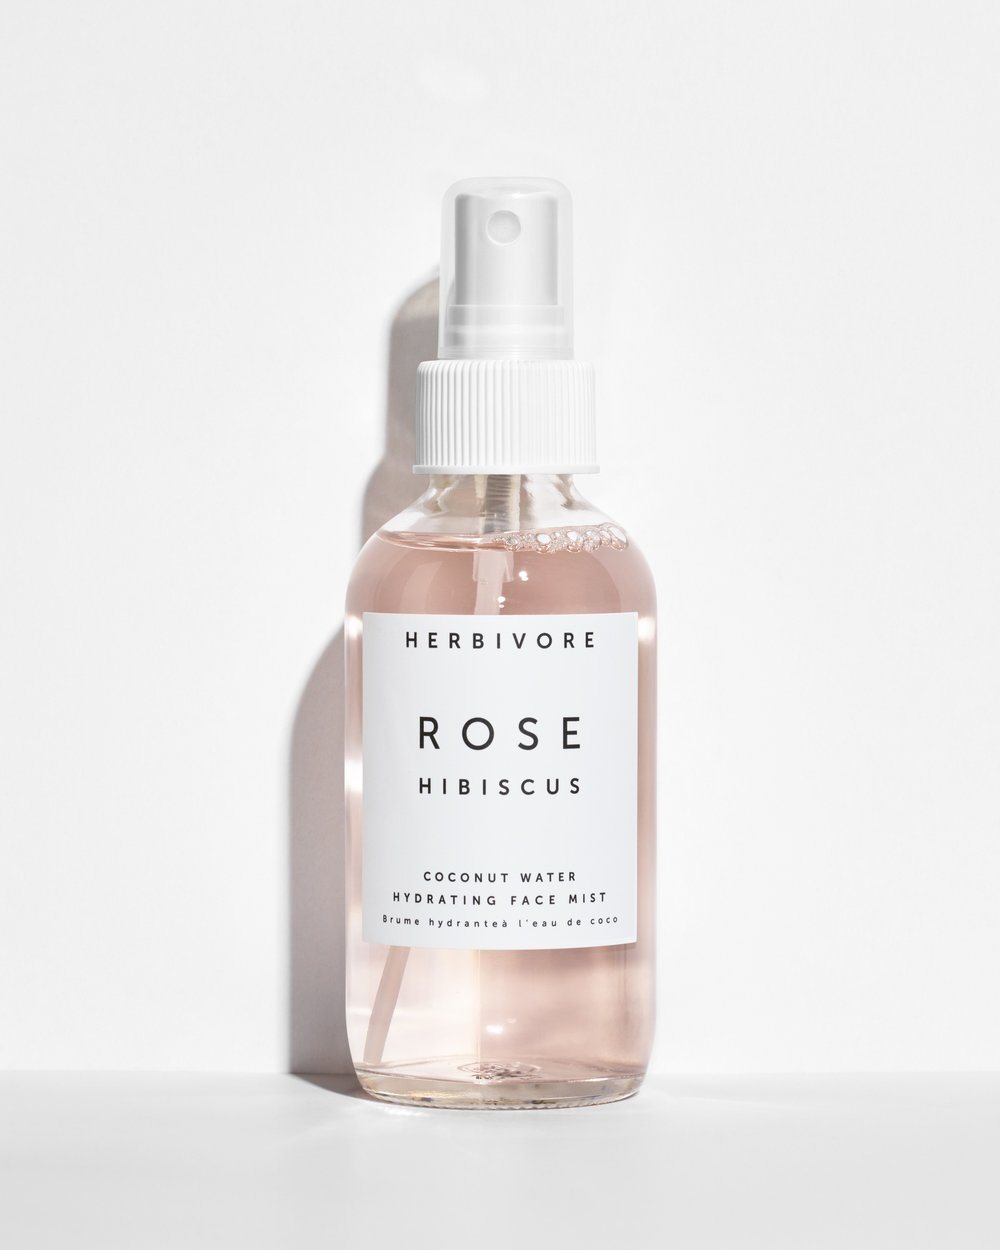 4.  - rose hibiscus hydrating face mist. sounds fancy right? I never really understood the hype about face mists (isn't that just diffused water?) until I tried them. this one is made from coconut water and can be sprayed even with makeup on without destroying it. super refreshing, I use it in the later afternoon or evening when my face gets a bit tired and I'm about to head out.